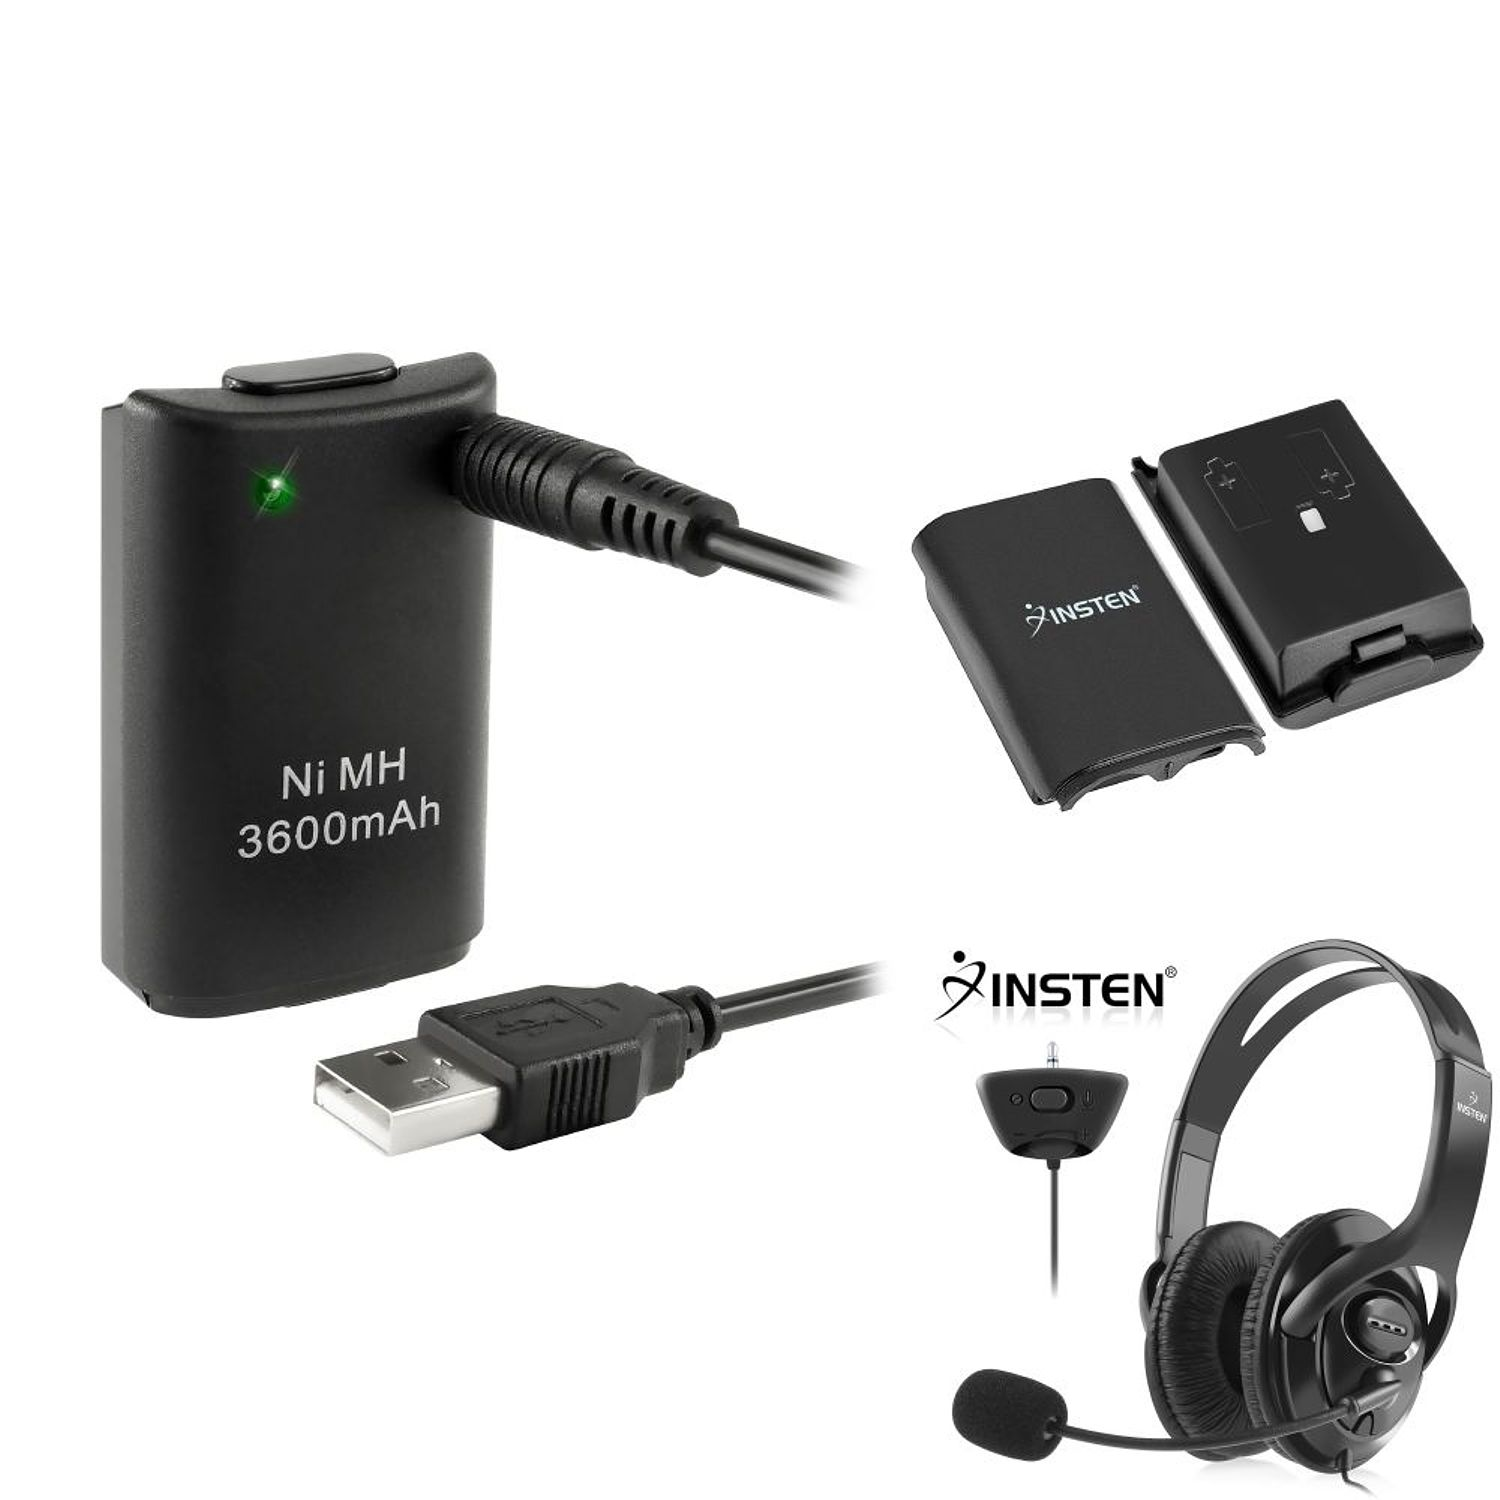 Insten Black Headset + Replacement Battery with USB Cable + Battery Shell For Xbox 360 Live